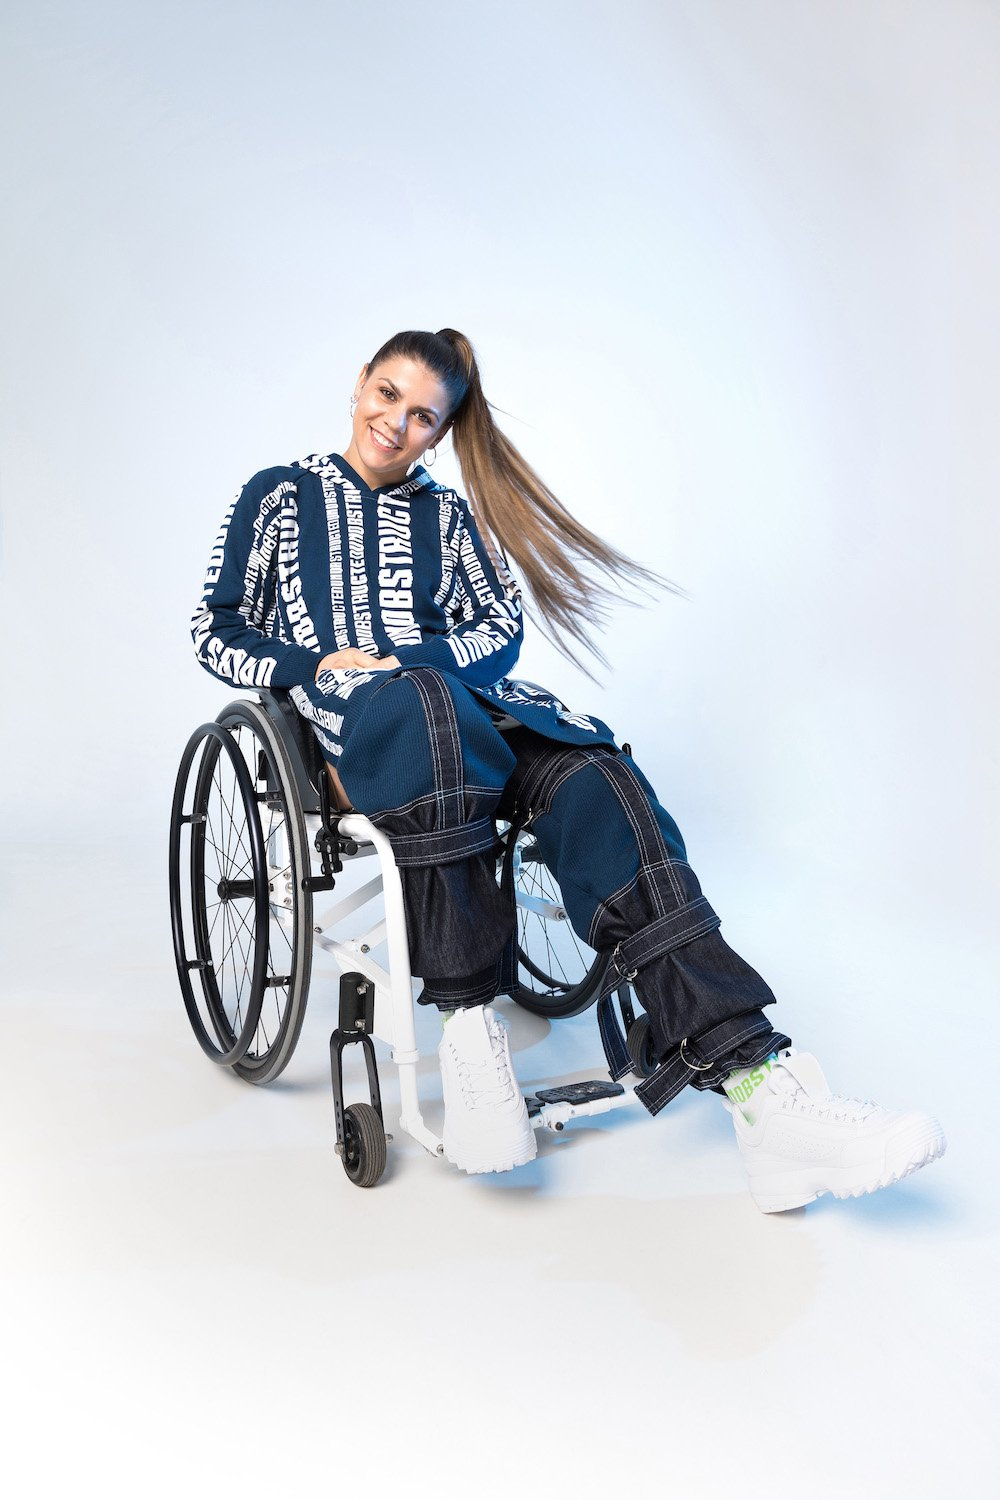 Amarila Veres, pro-wheelchair fencer and Paralympian